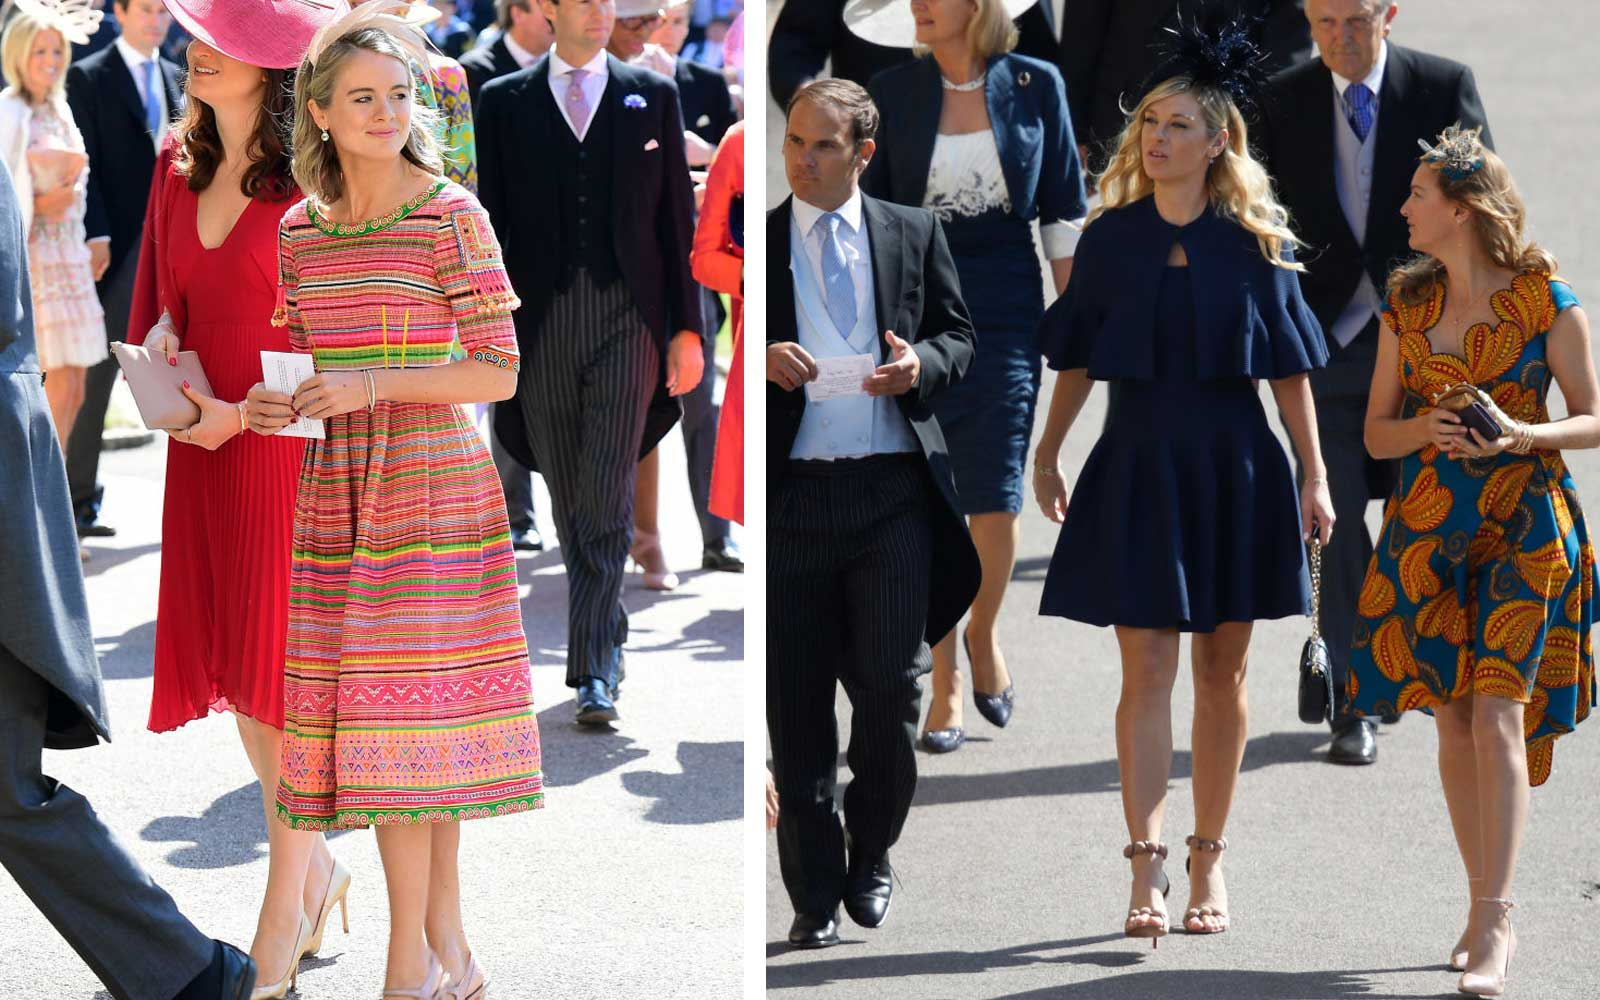 Prince Harry's Ex-girlfriends Are at the Royal Wedding